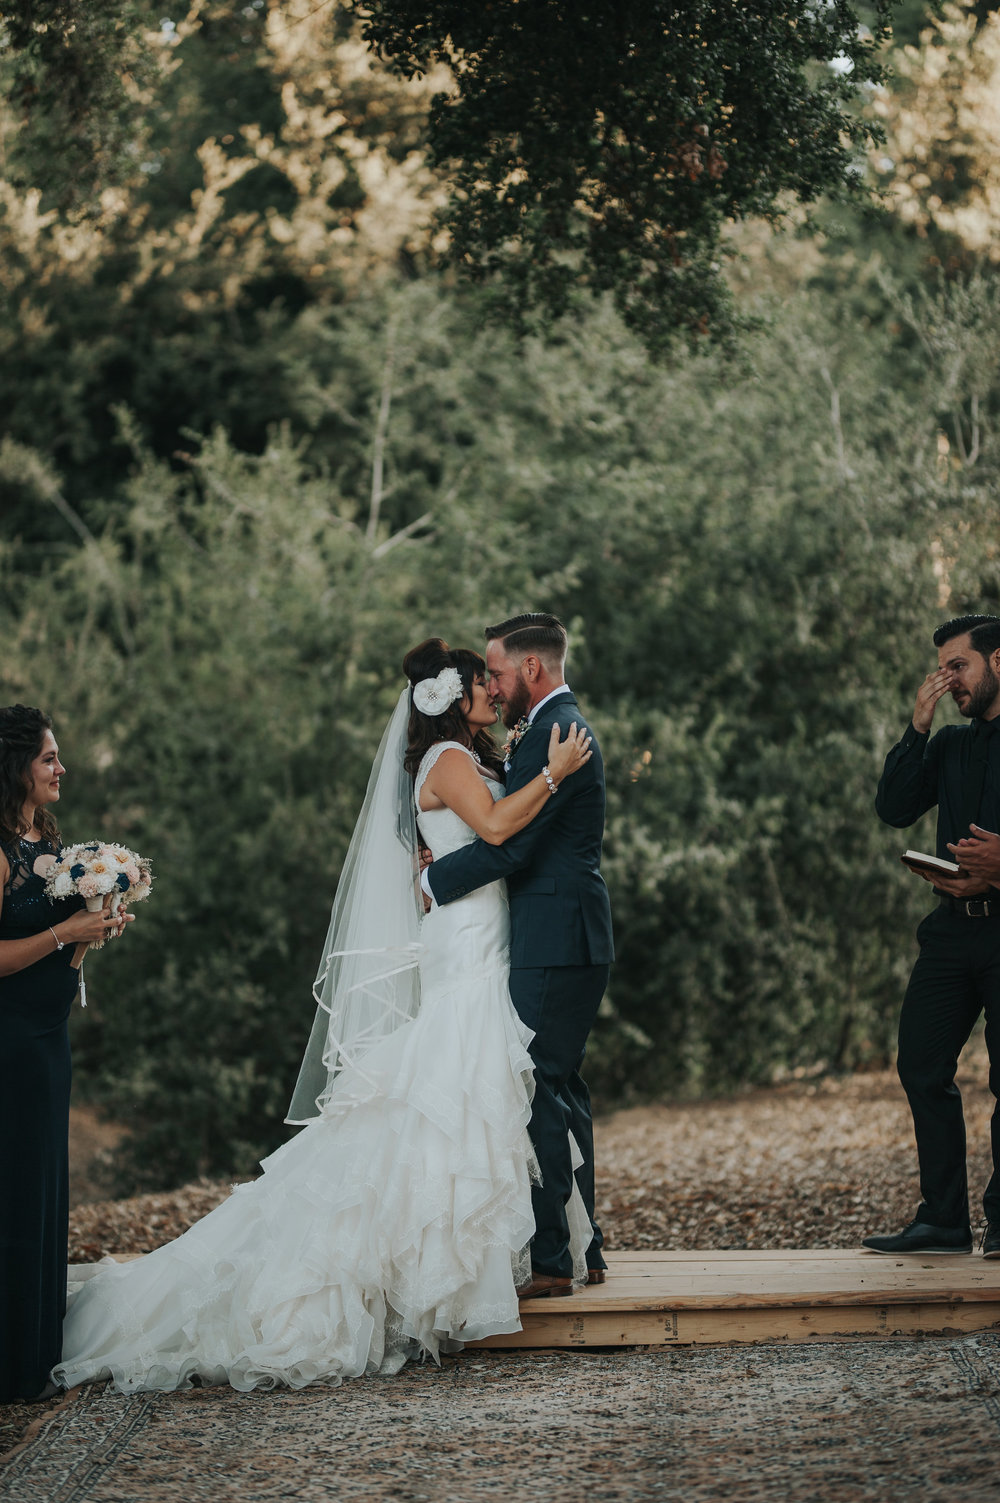 Bride wearing Zac Posen kissing her groom on vintage carpets in the Temecula Valley.